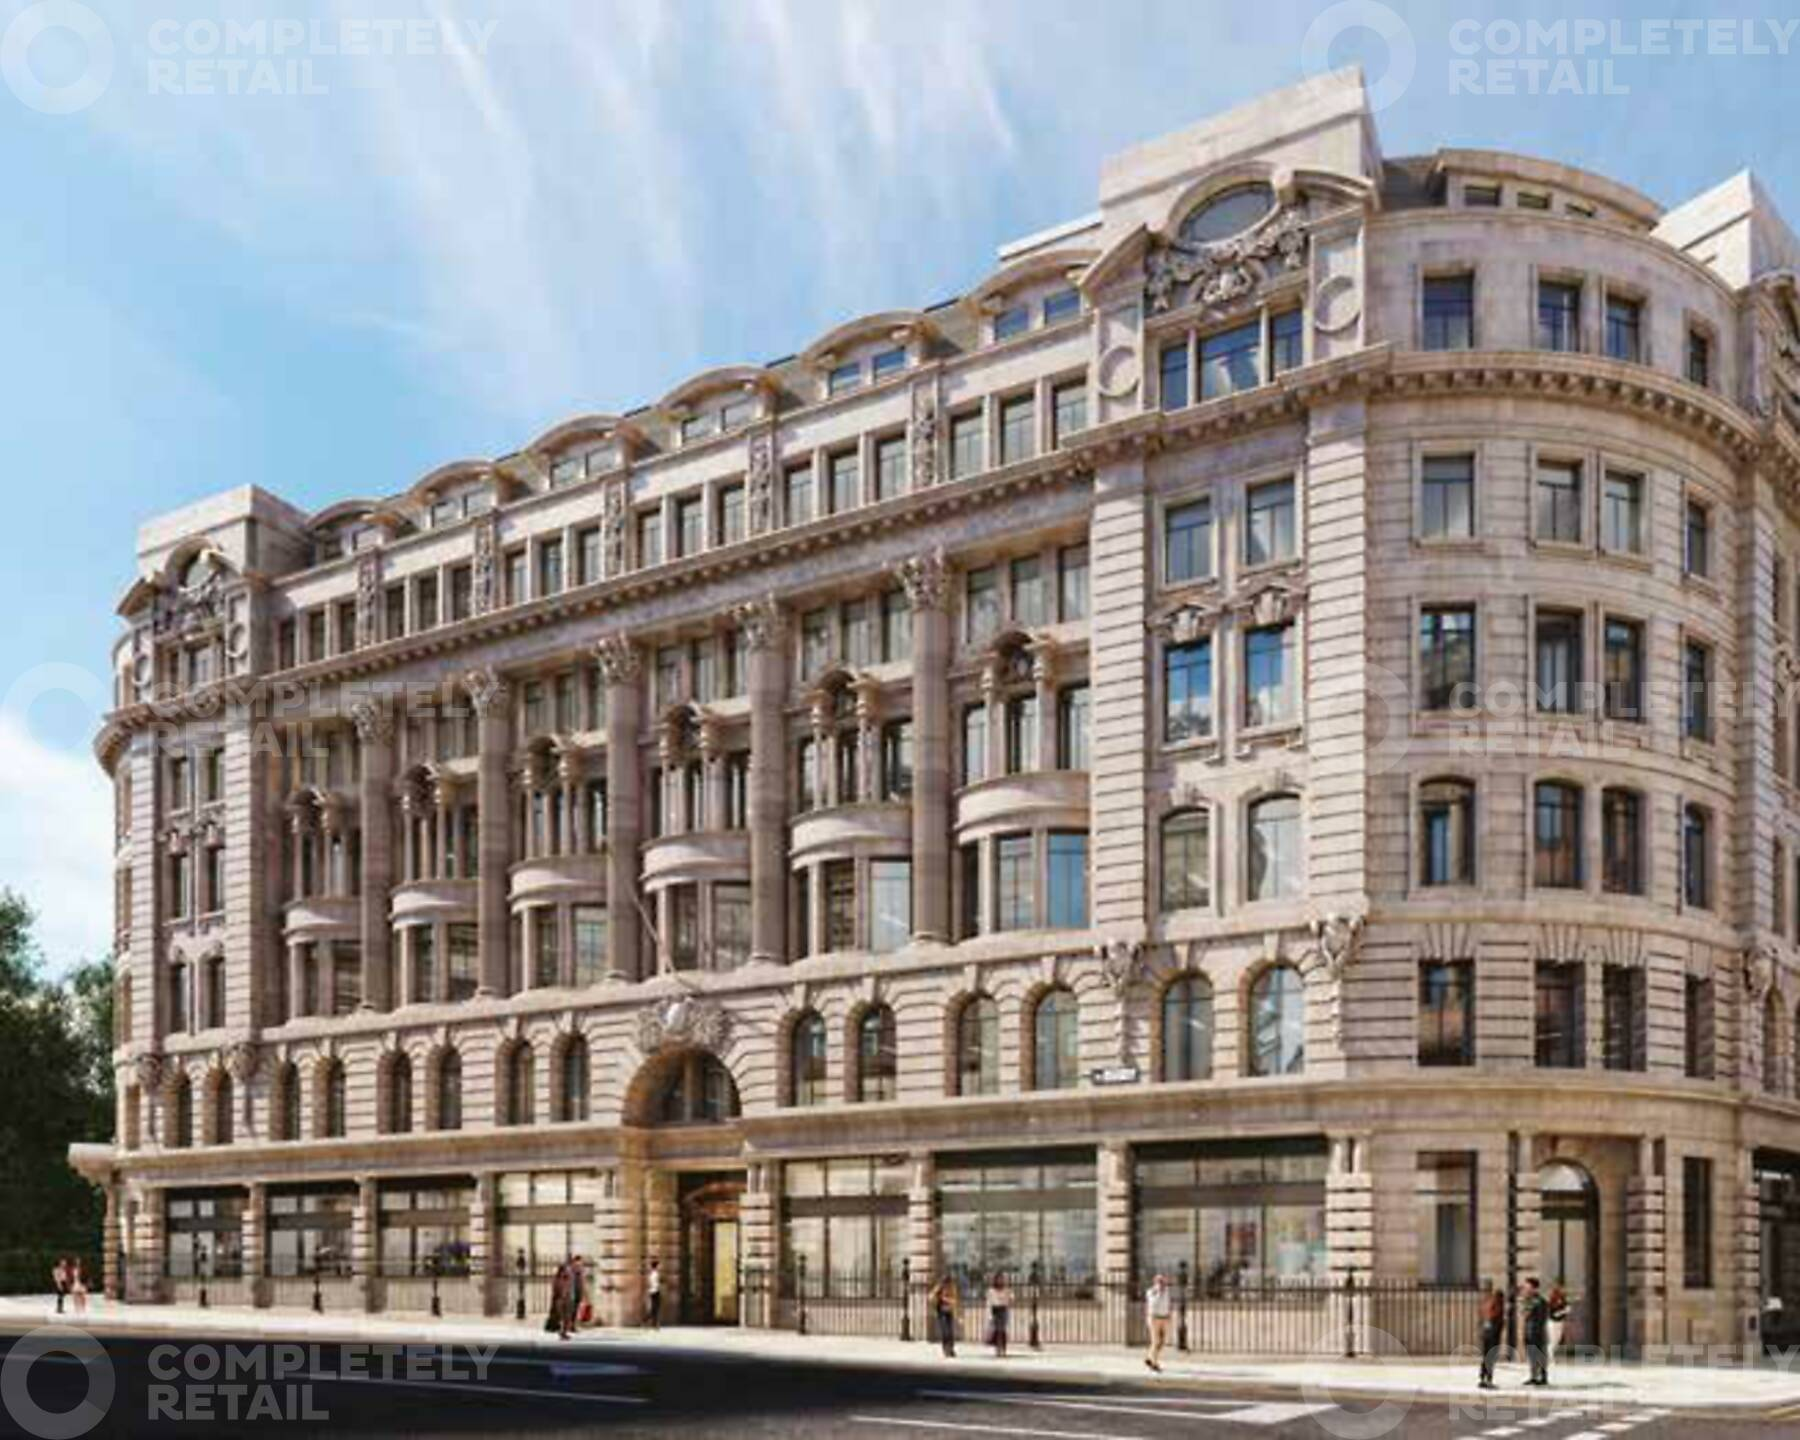 Unit 1, 31-35 Blomfield Street, London EC2